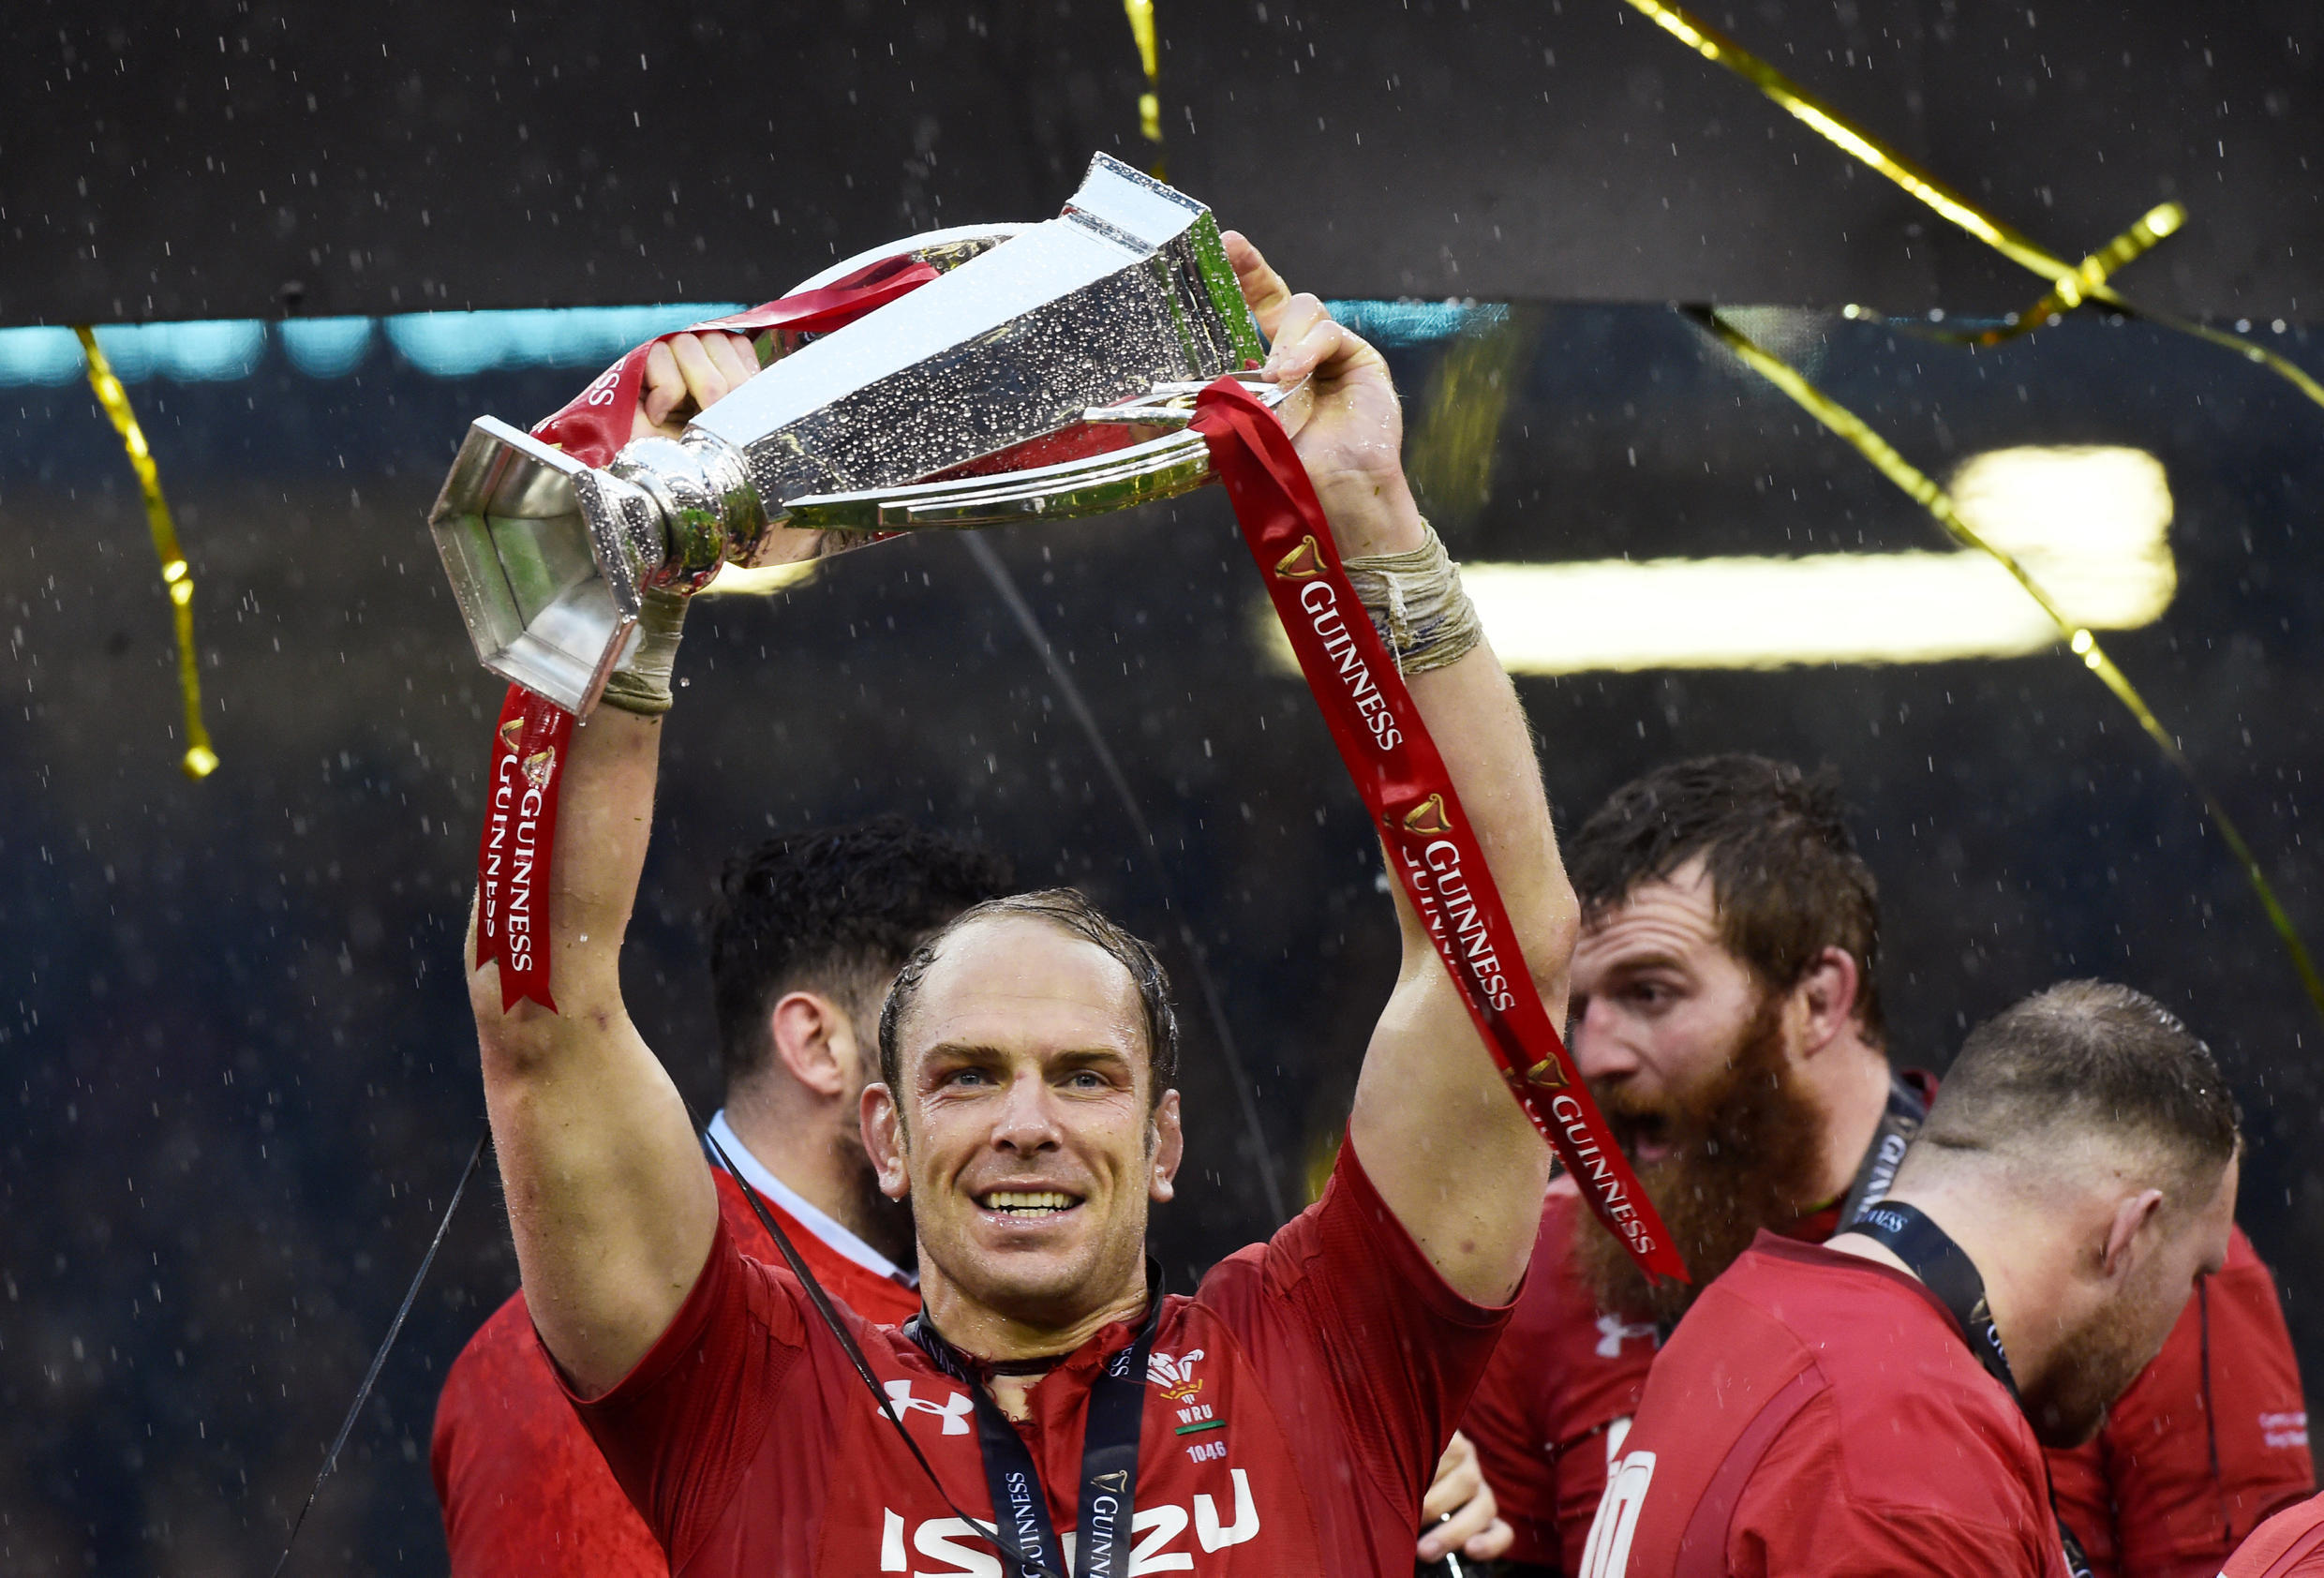 Alun Wyn Jones Wales captained Wales to their first Six Nations title since 2013.